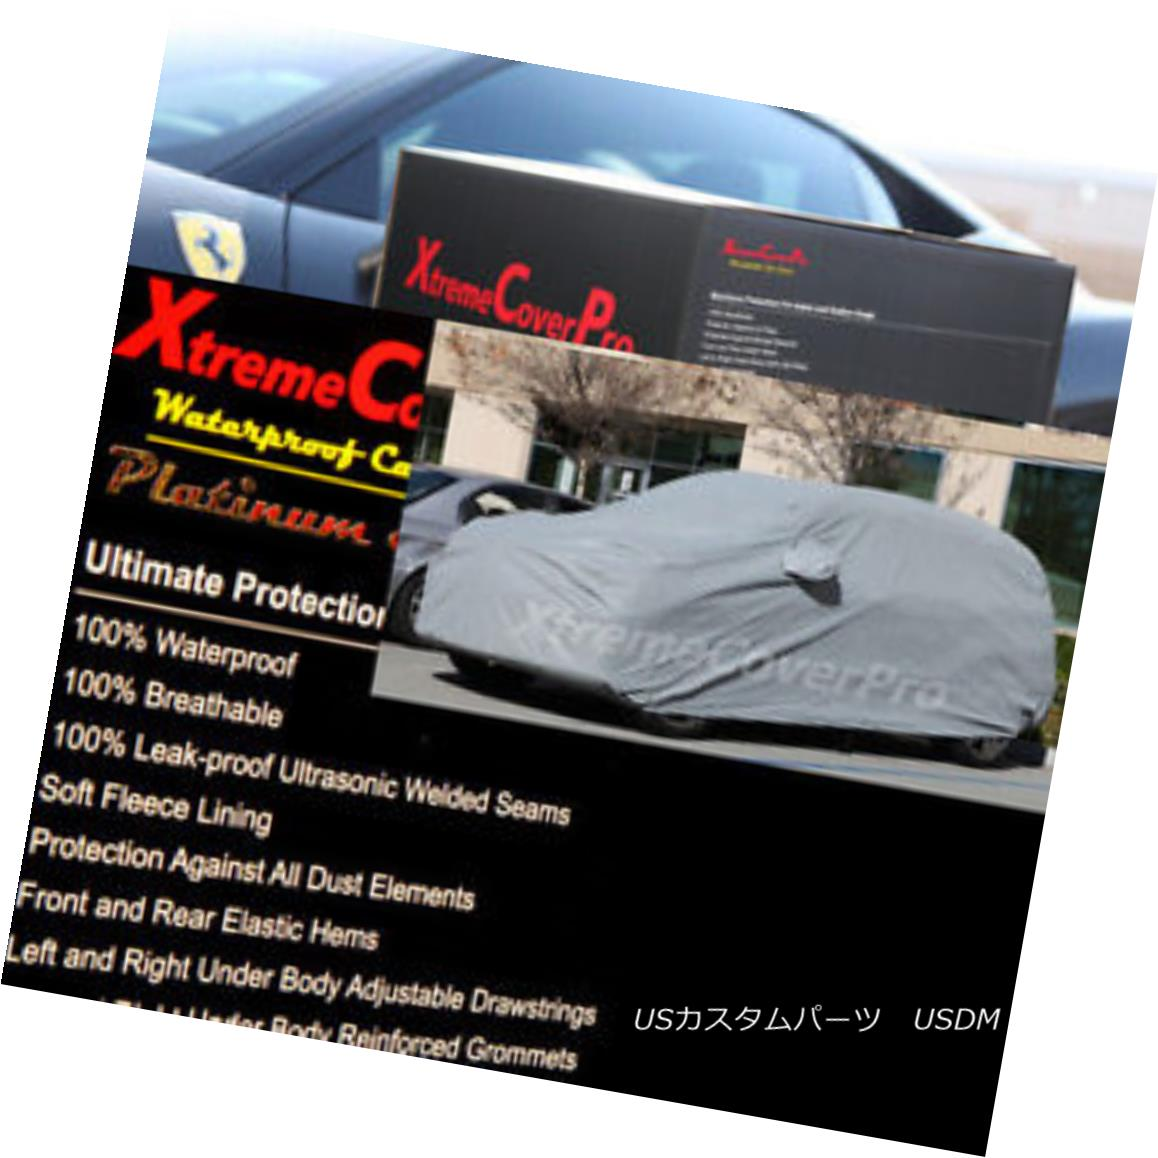 カーカバー 2001 2002 2003 Toyota Sequoia Waterproof Car Cover w/MirrorPocket 2001 2002 2003トヨタセコイア防水カーカバー付きMirrorPocket